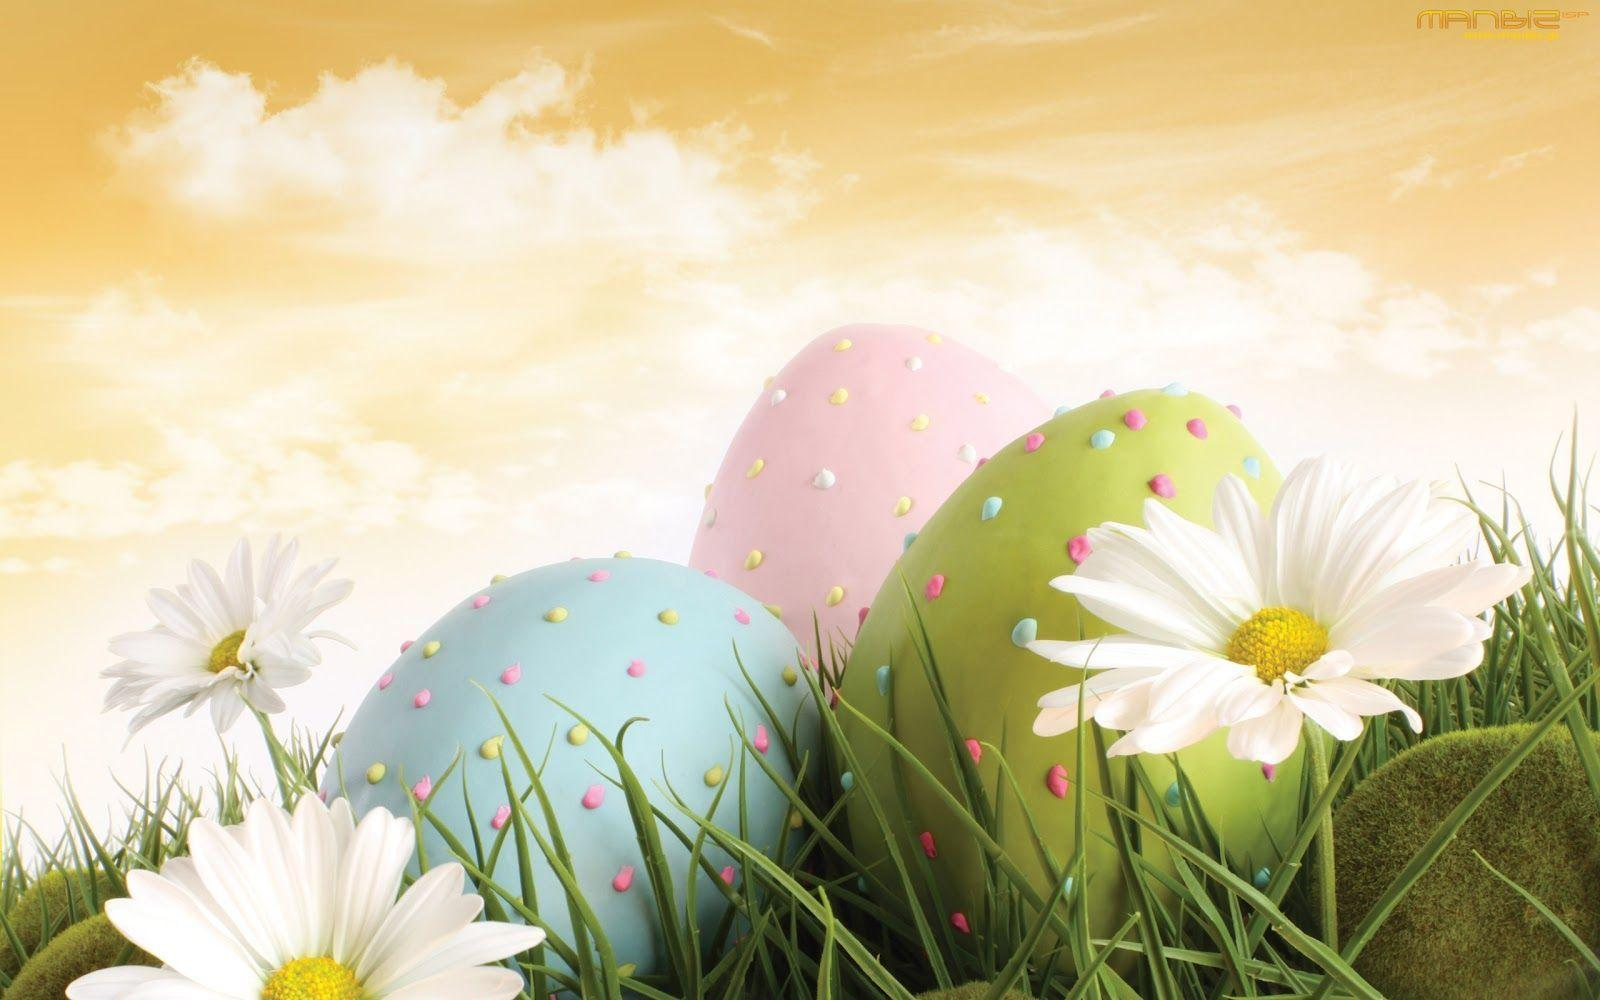 Image For > Vintage Easter Wallpapers